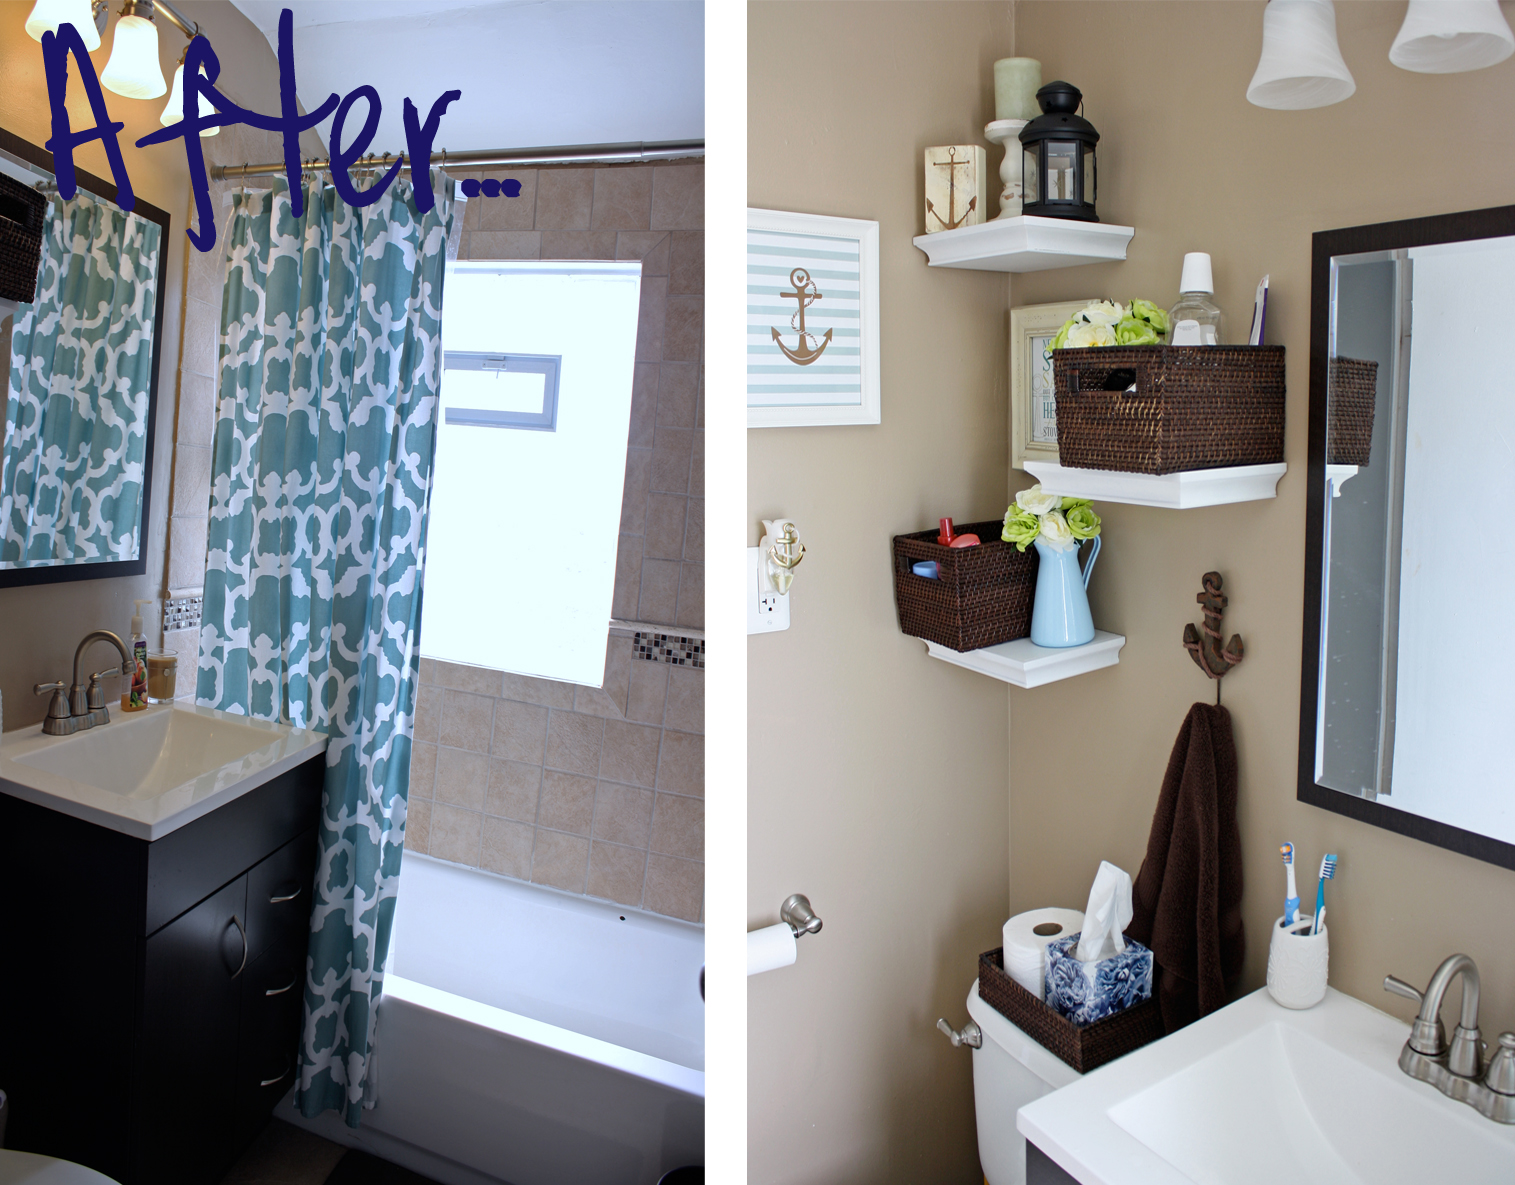 Easy Bathroom Decorating Ideas: Less Than Average Height